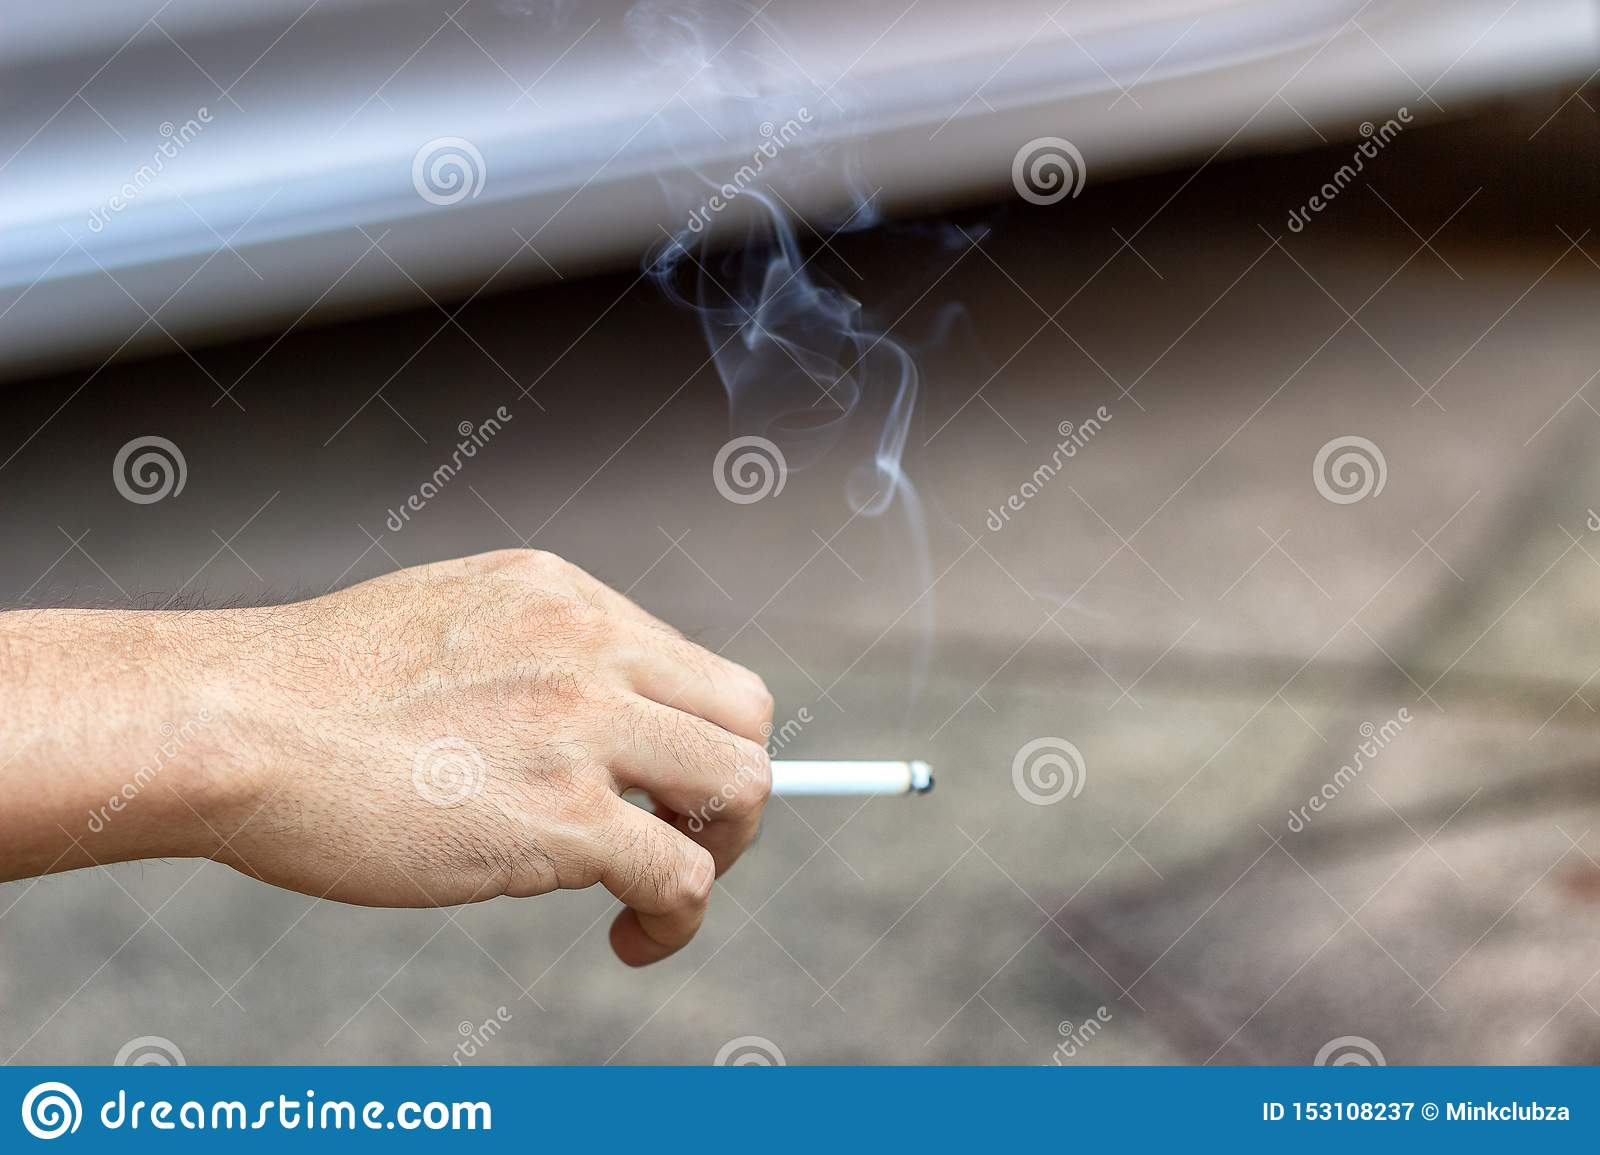 The concept of smoking cessation with male hands is carrying smoke cigarettes drugs, which are harmful to people around and